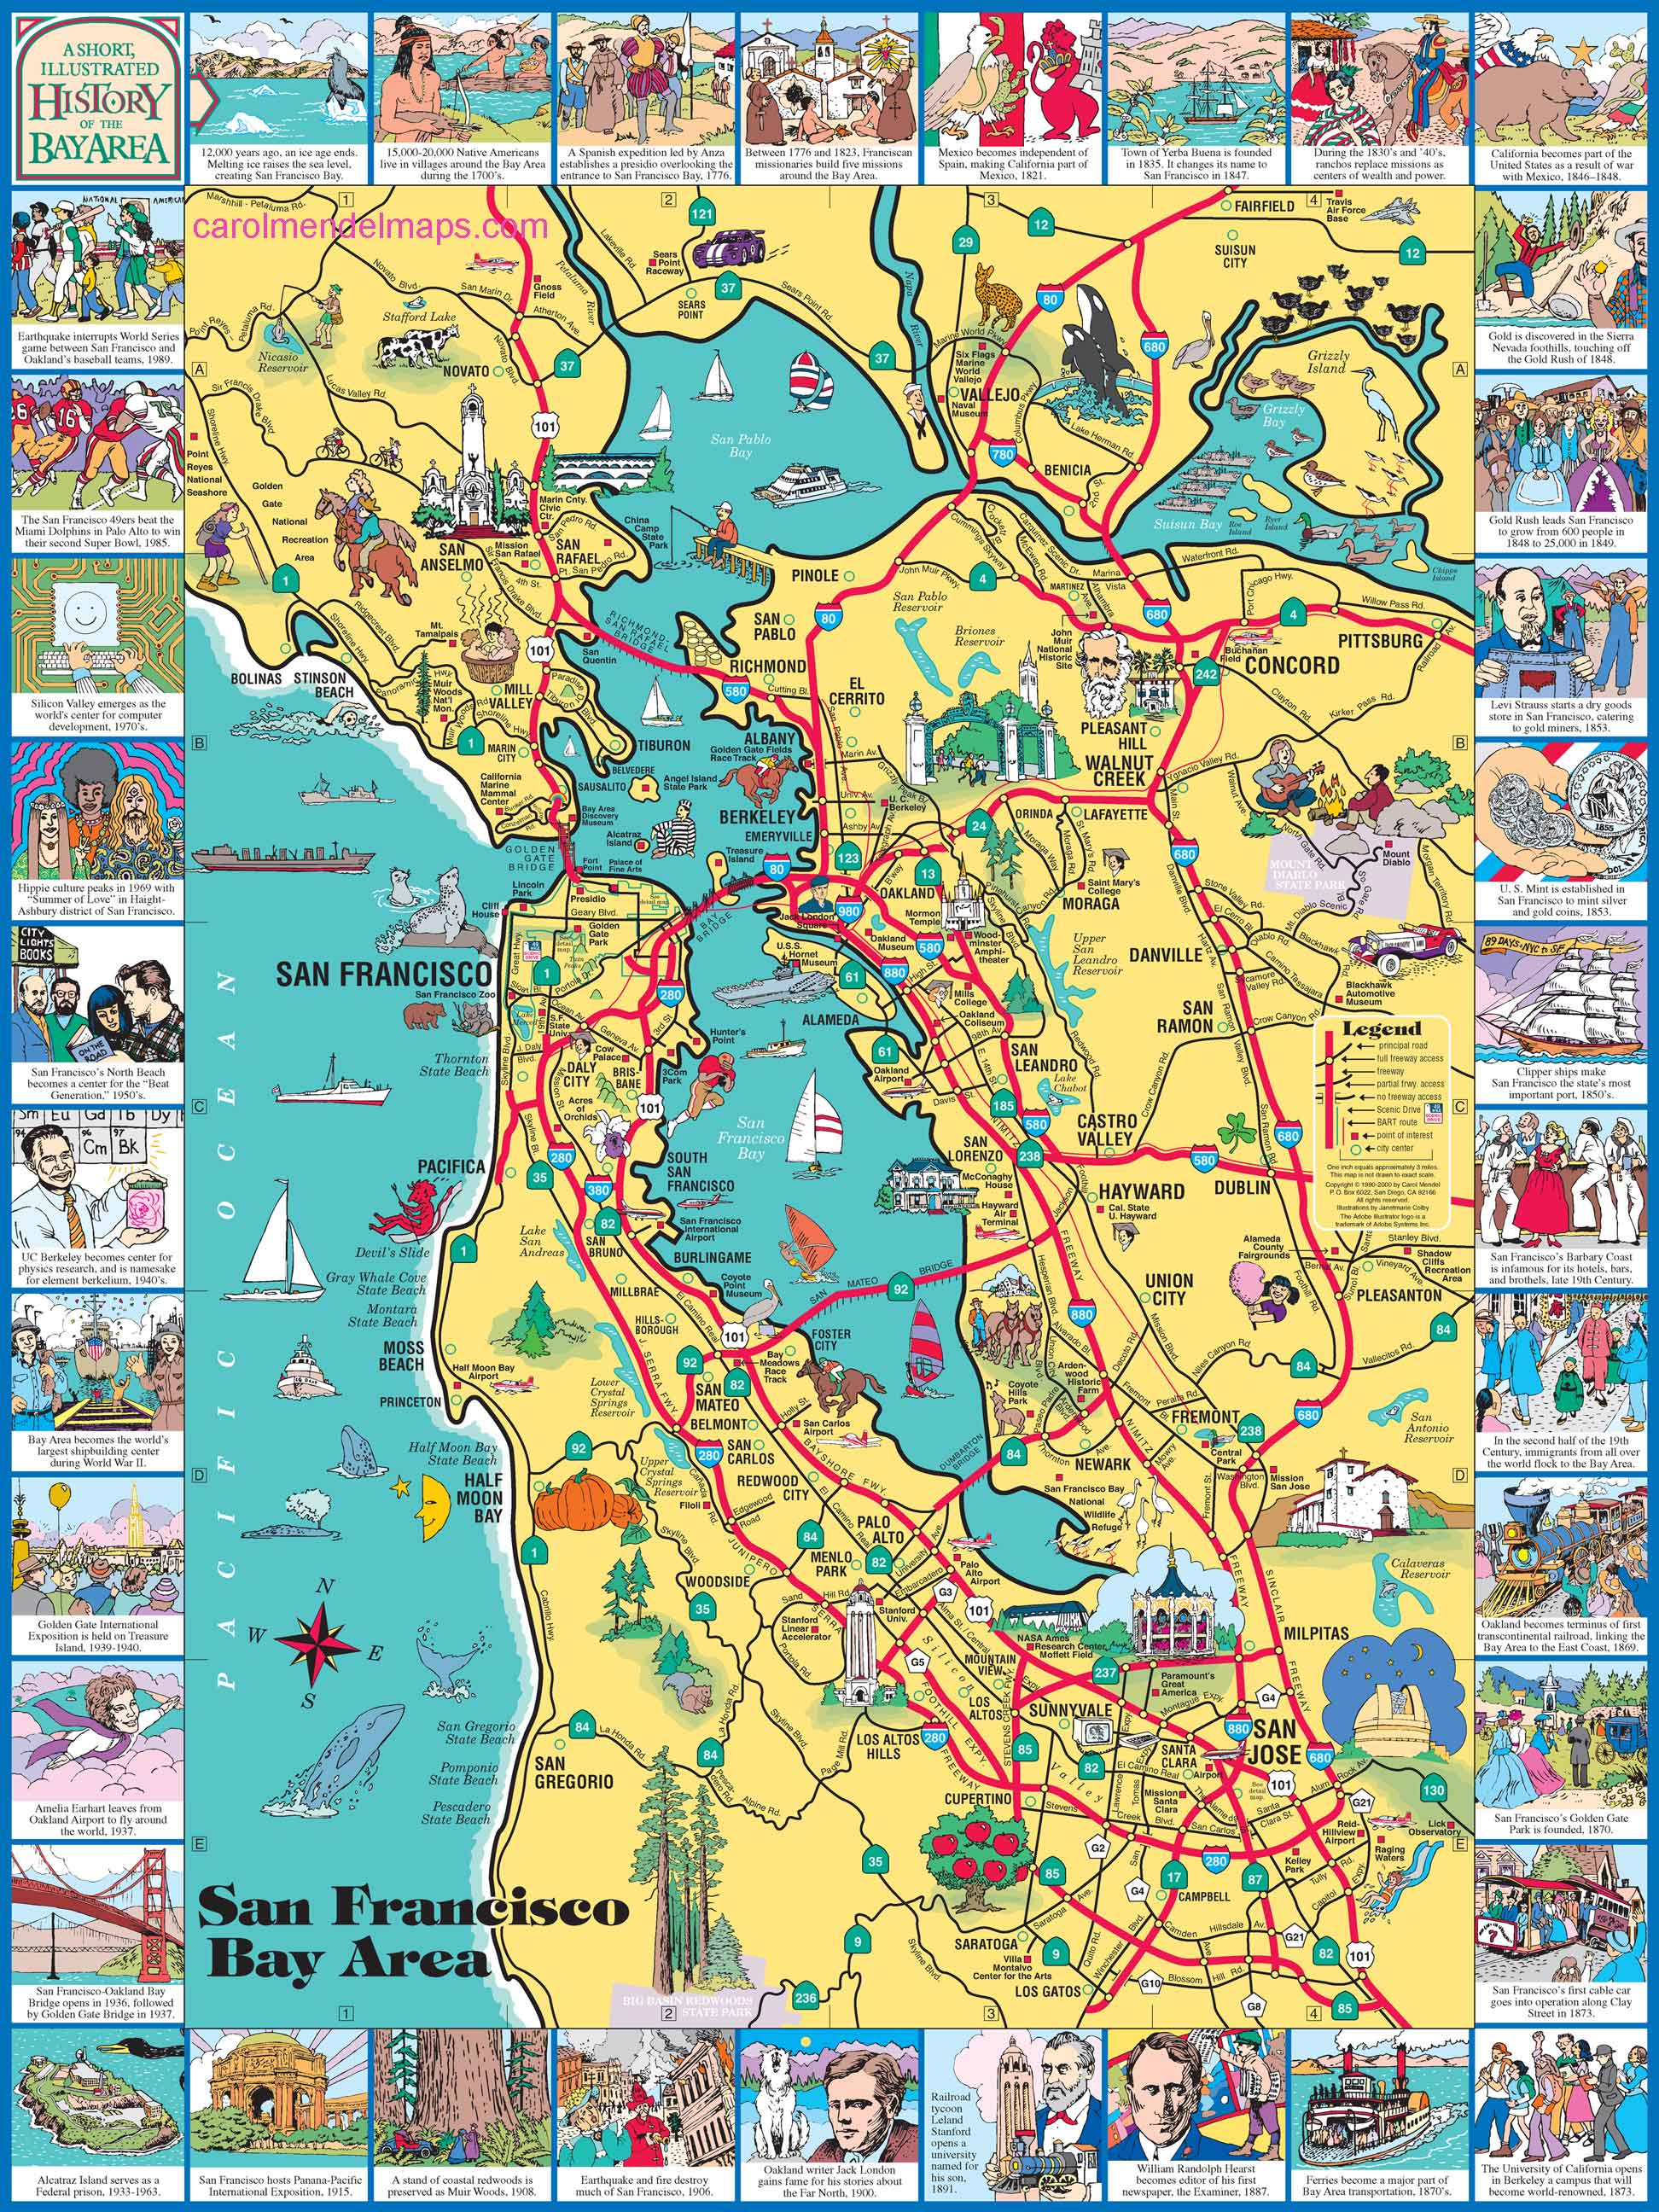 a clickable pictorial map of the San Francisco Bay Area